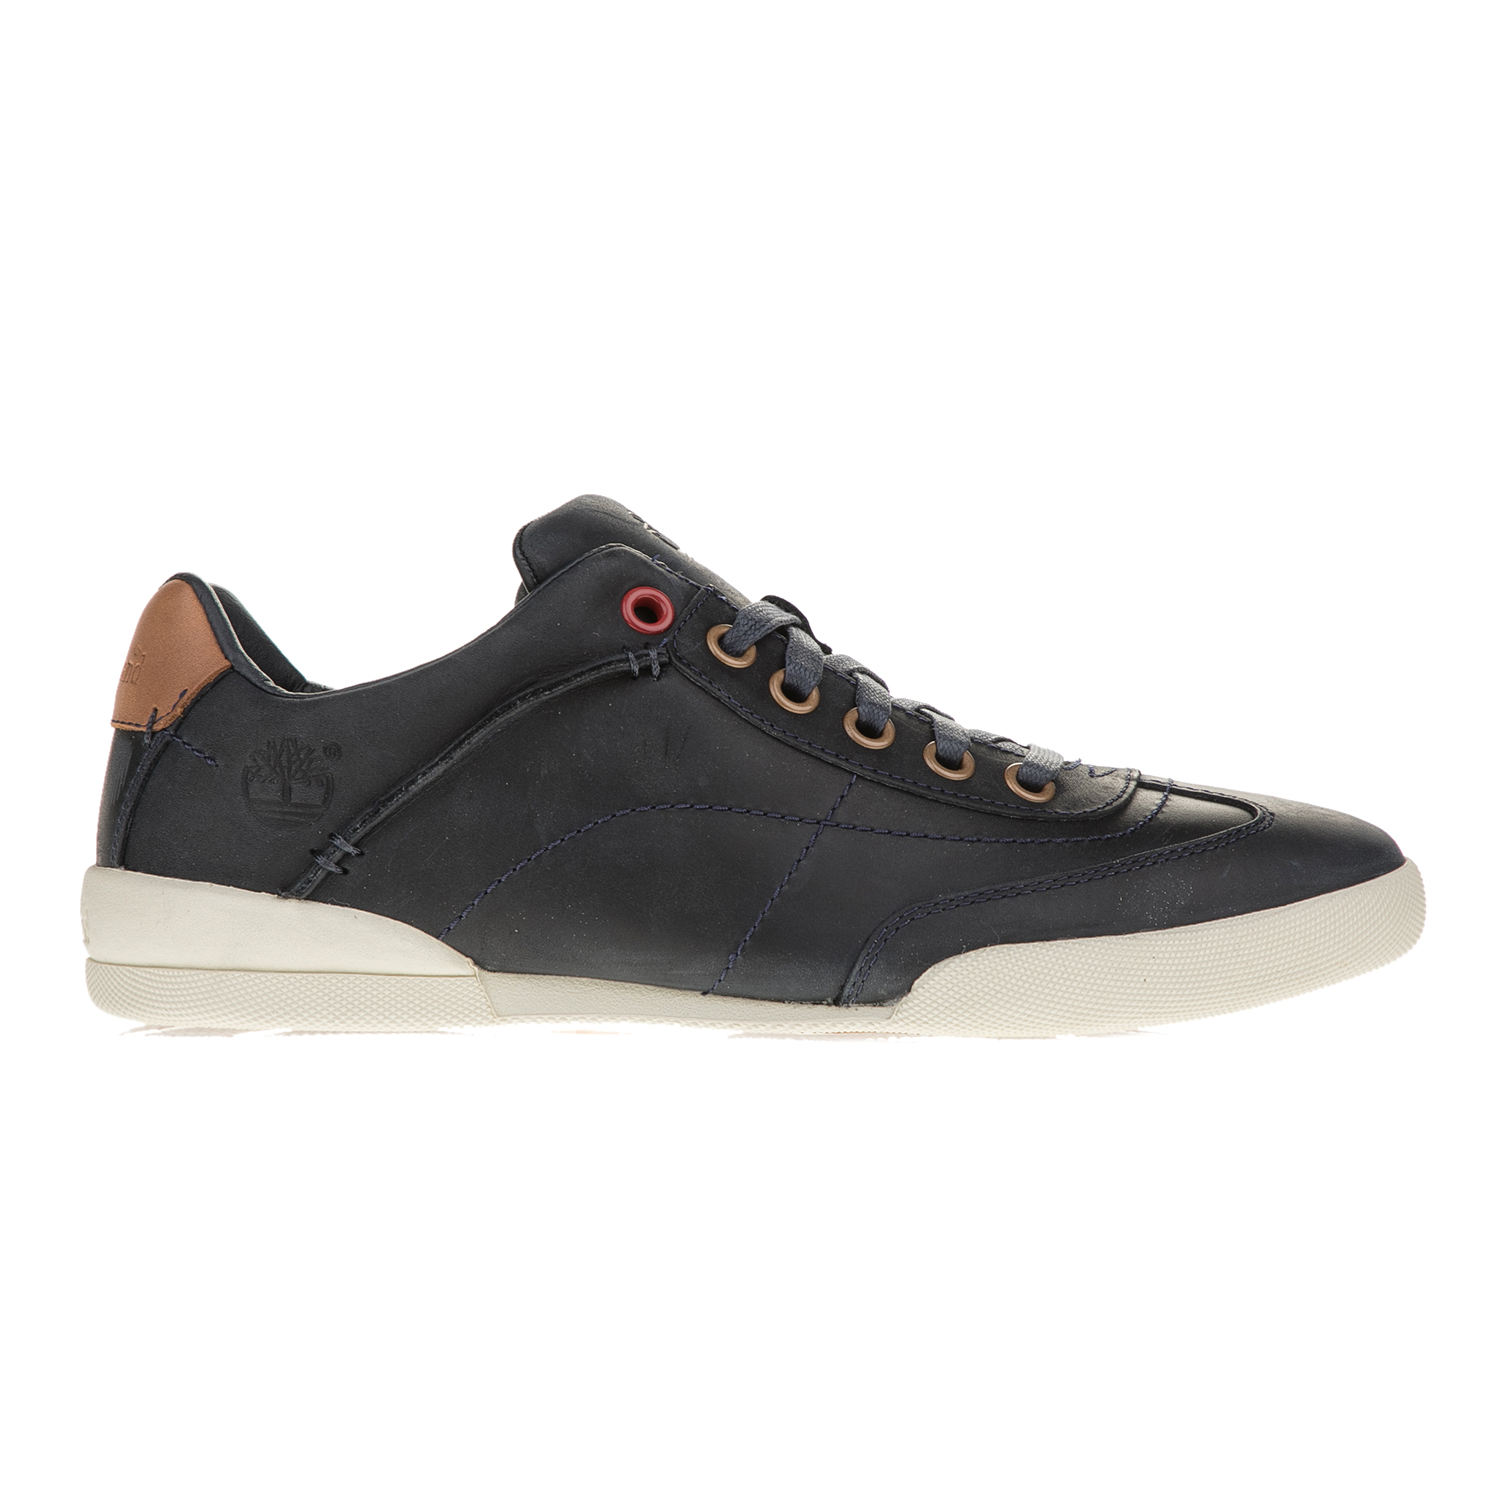 TIMBERLAND – Ανδρικά sneakers TIMBERLAND EKSPLTCP BSO μπλε